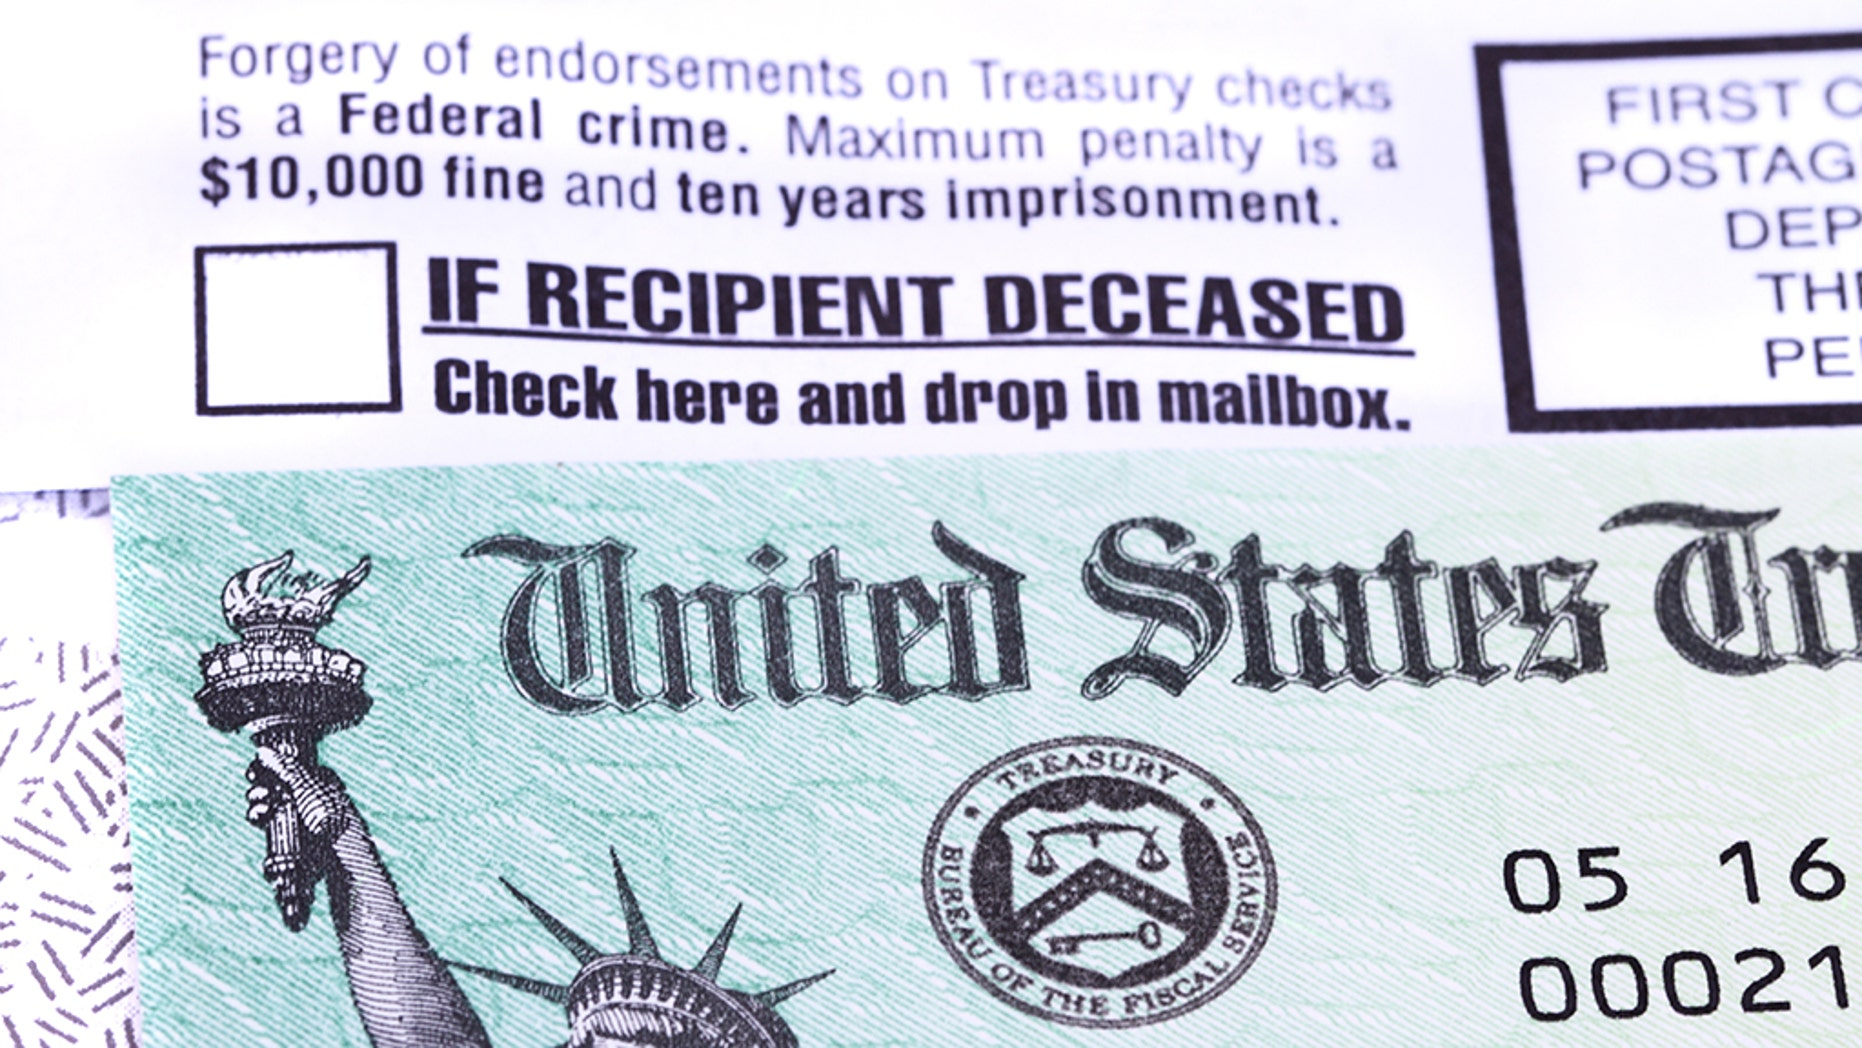 West Palm Beach, USA - June 10, 2014: A United States government Treasury Check used to pay Social Security or Medicare benefits lies on top of the opened envelope used to mail it to the recipient. The envelope has warnings of criminal penalties for anyone who fraudulently endorses the check. It also warns that if the recipient is deceased, the check should be placed in the return mail. The distinctive green checks feature an engraving of the Statue of Liberty and the Treasury Seal.